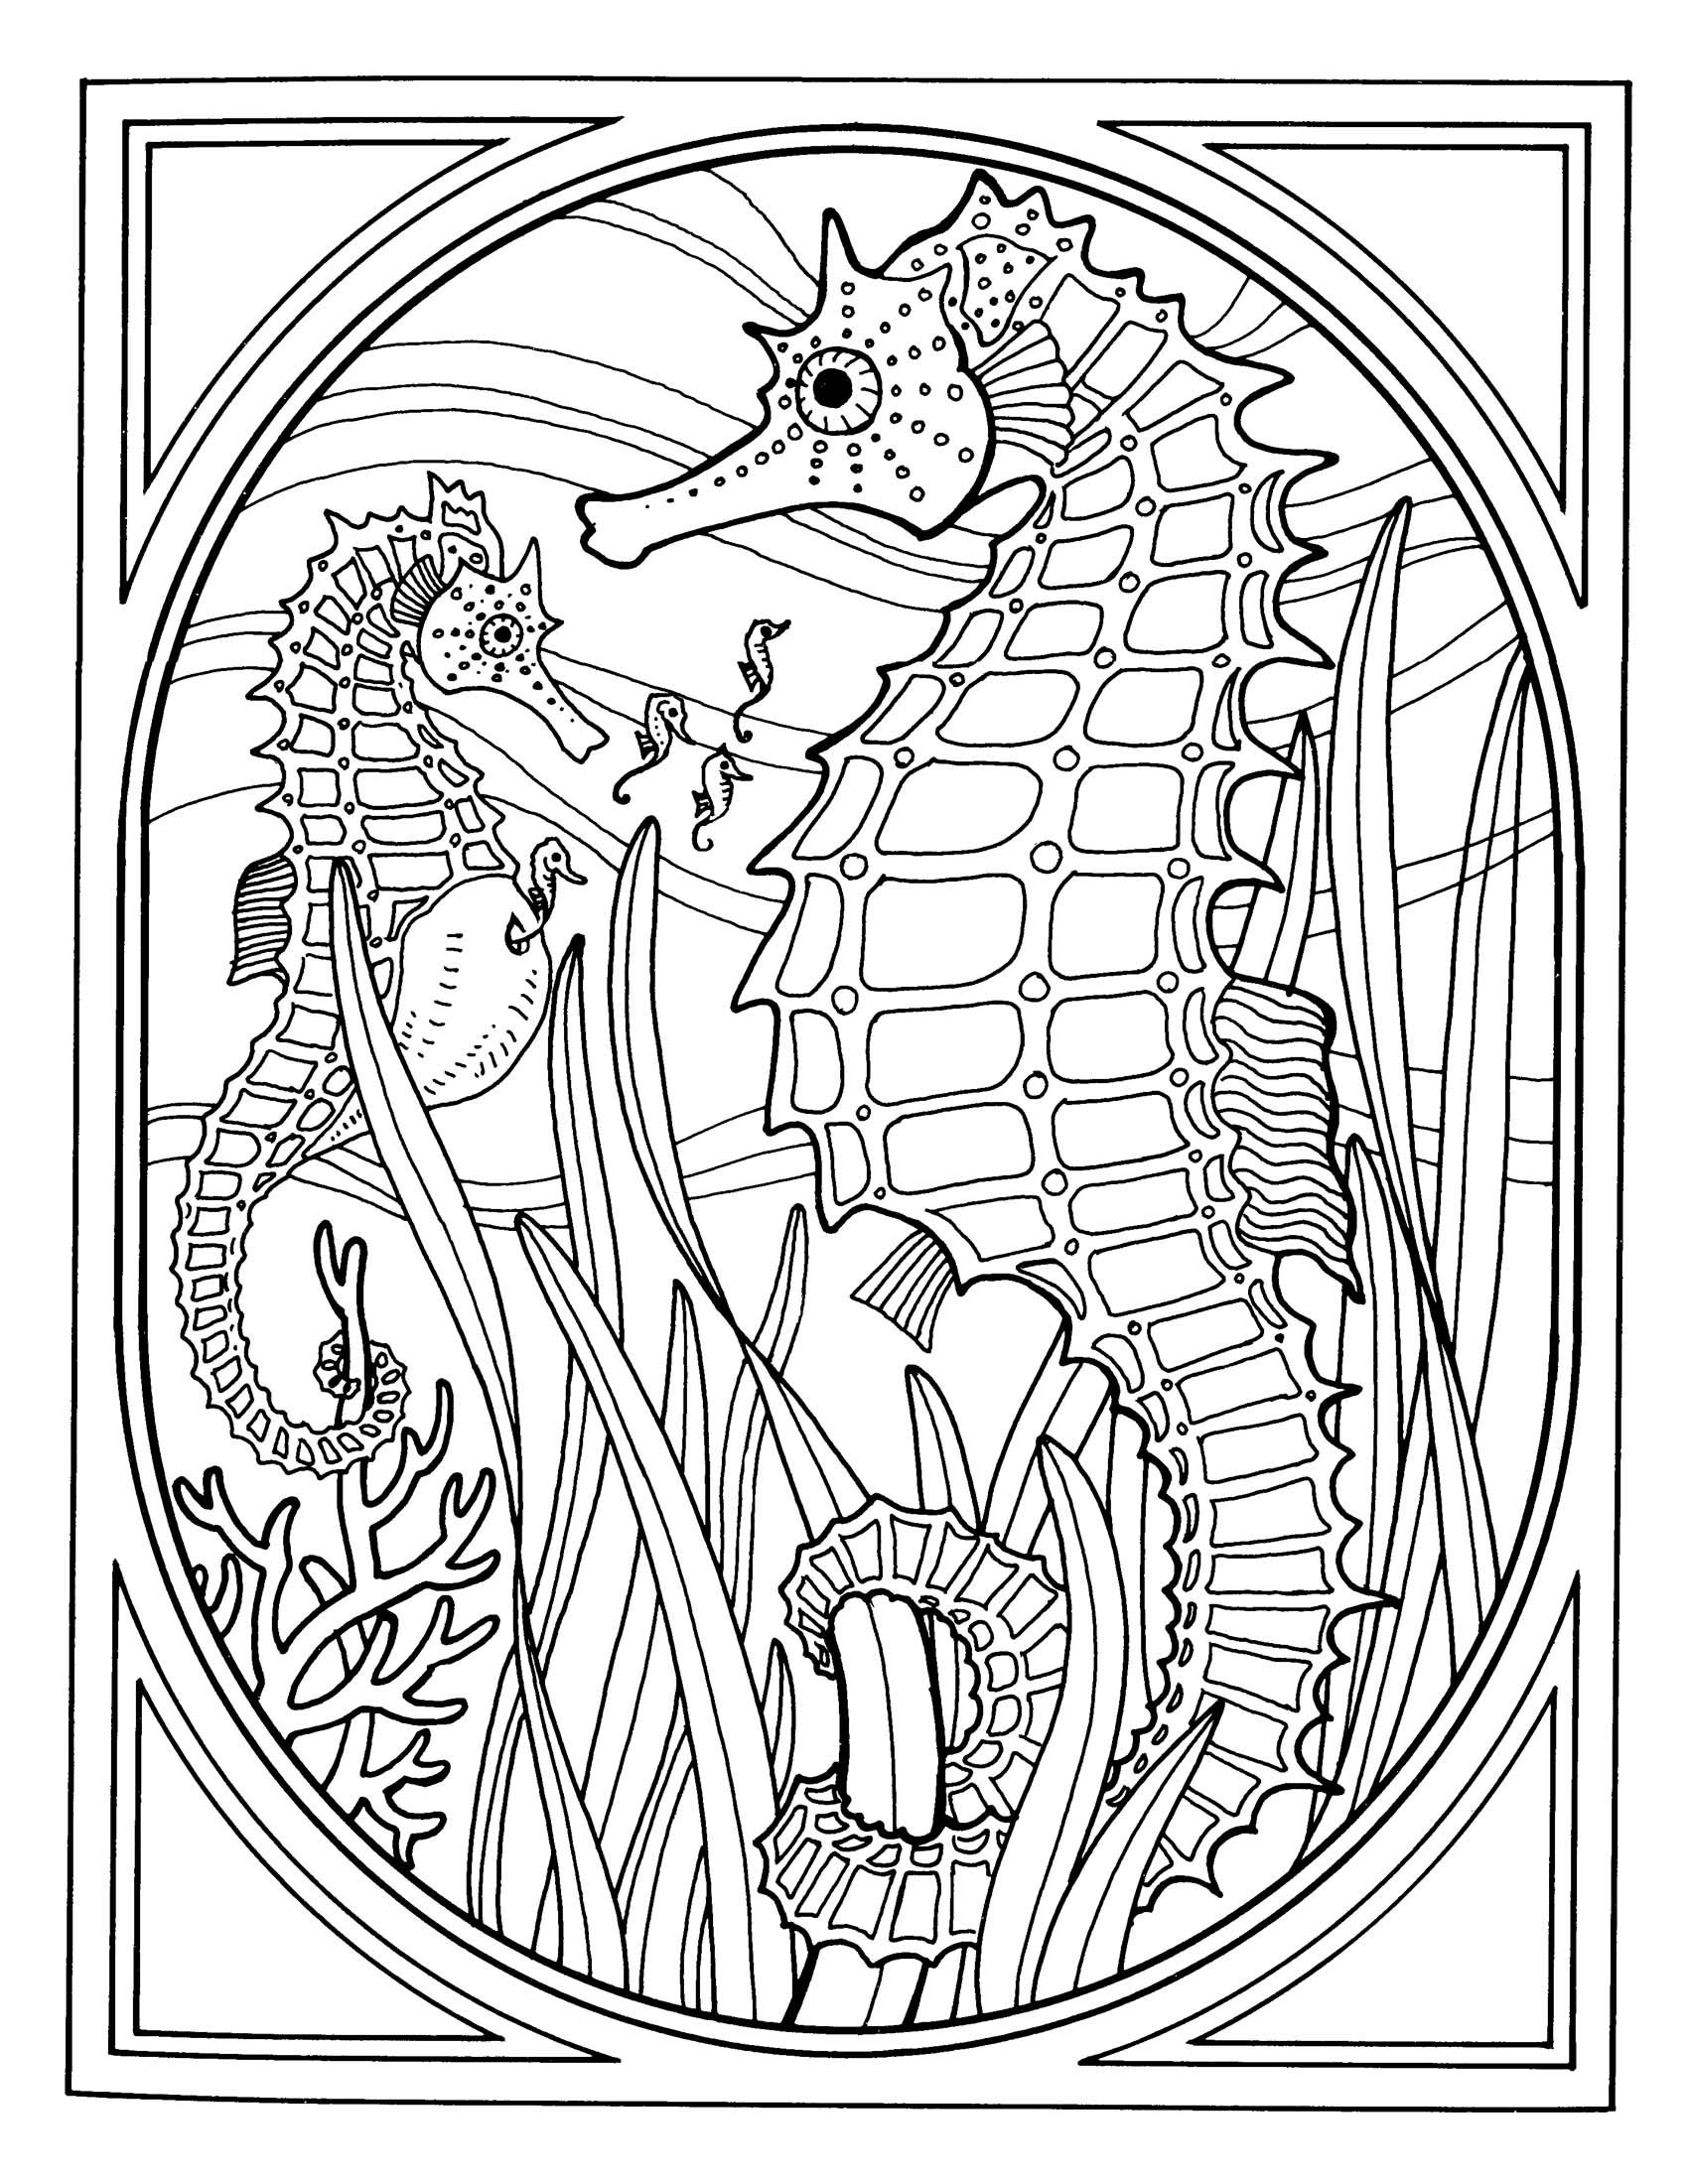 intricate coloring pages for kids 16 intricate coloring pages for kids print color craft pages coloring intricate kids for